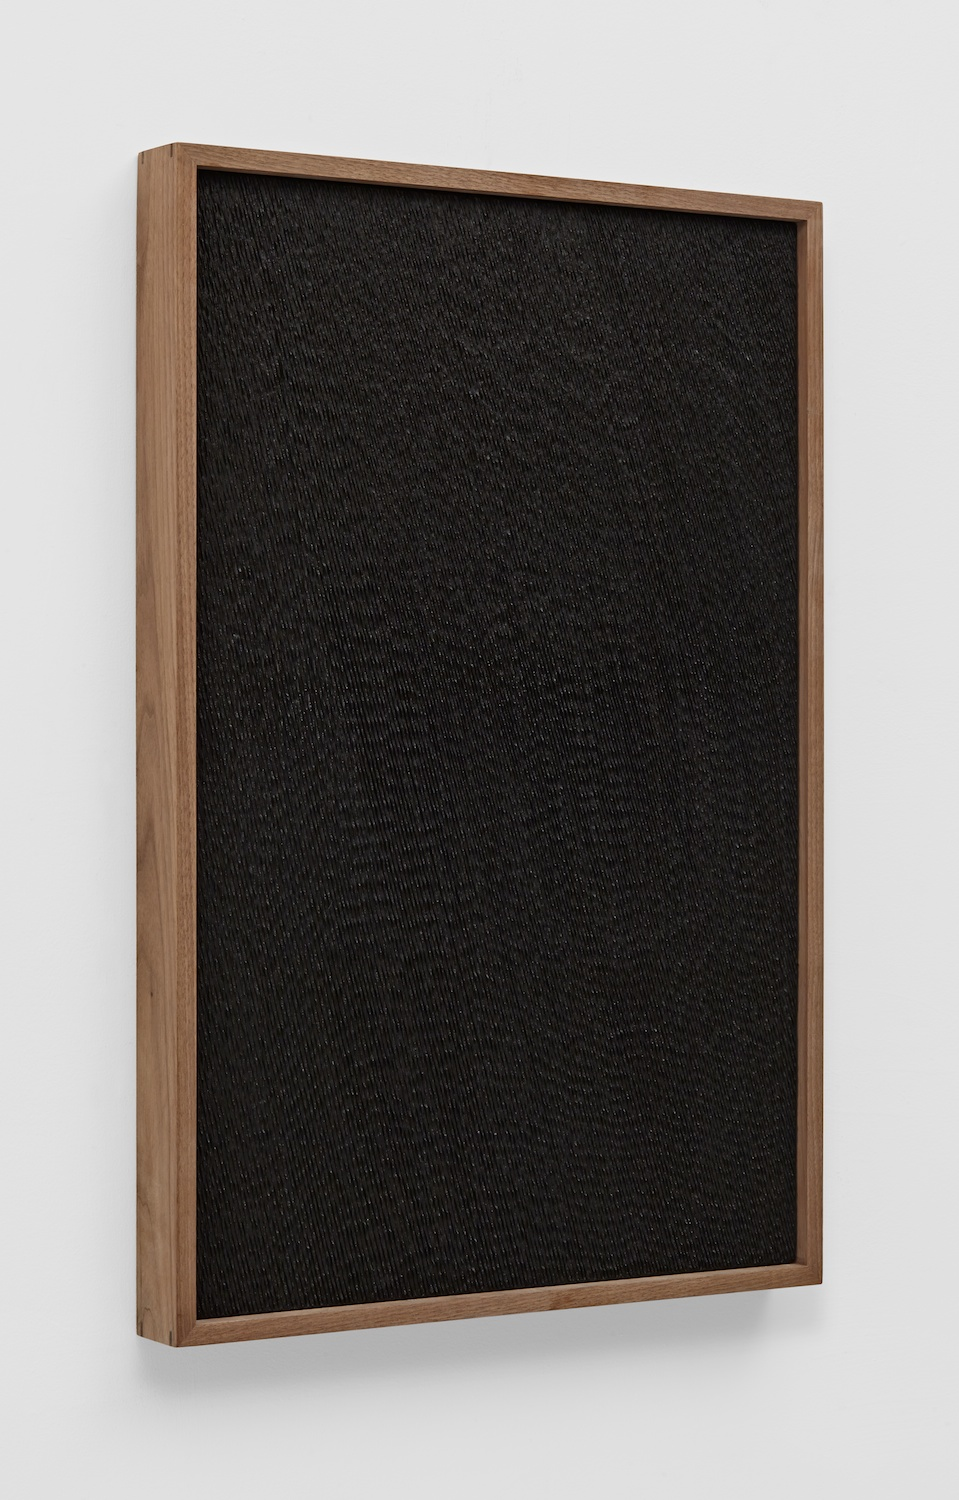 "Anthony Pearson Untitled (Etched Plaster) 2014 Pigmented hydrocal in walnut frame 30 1/2"" x 20 1/2"" x 2 1/4"" AP356"